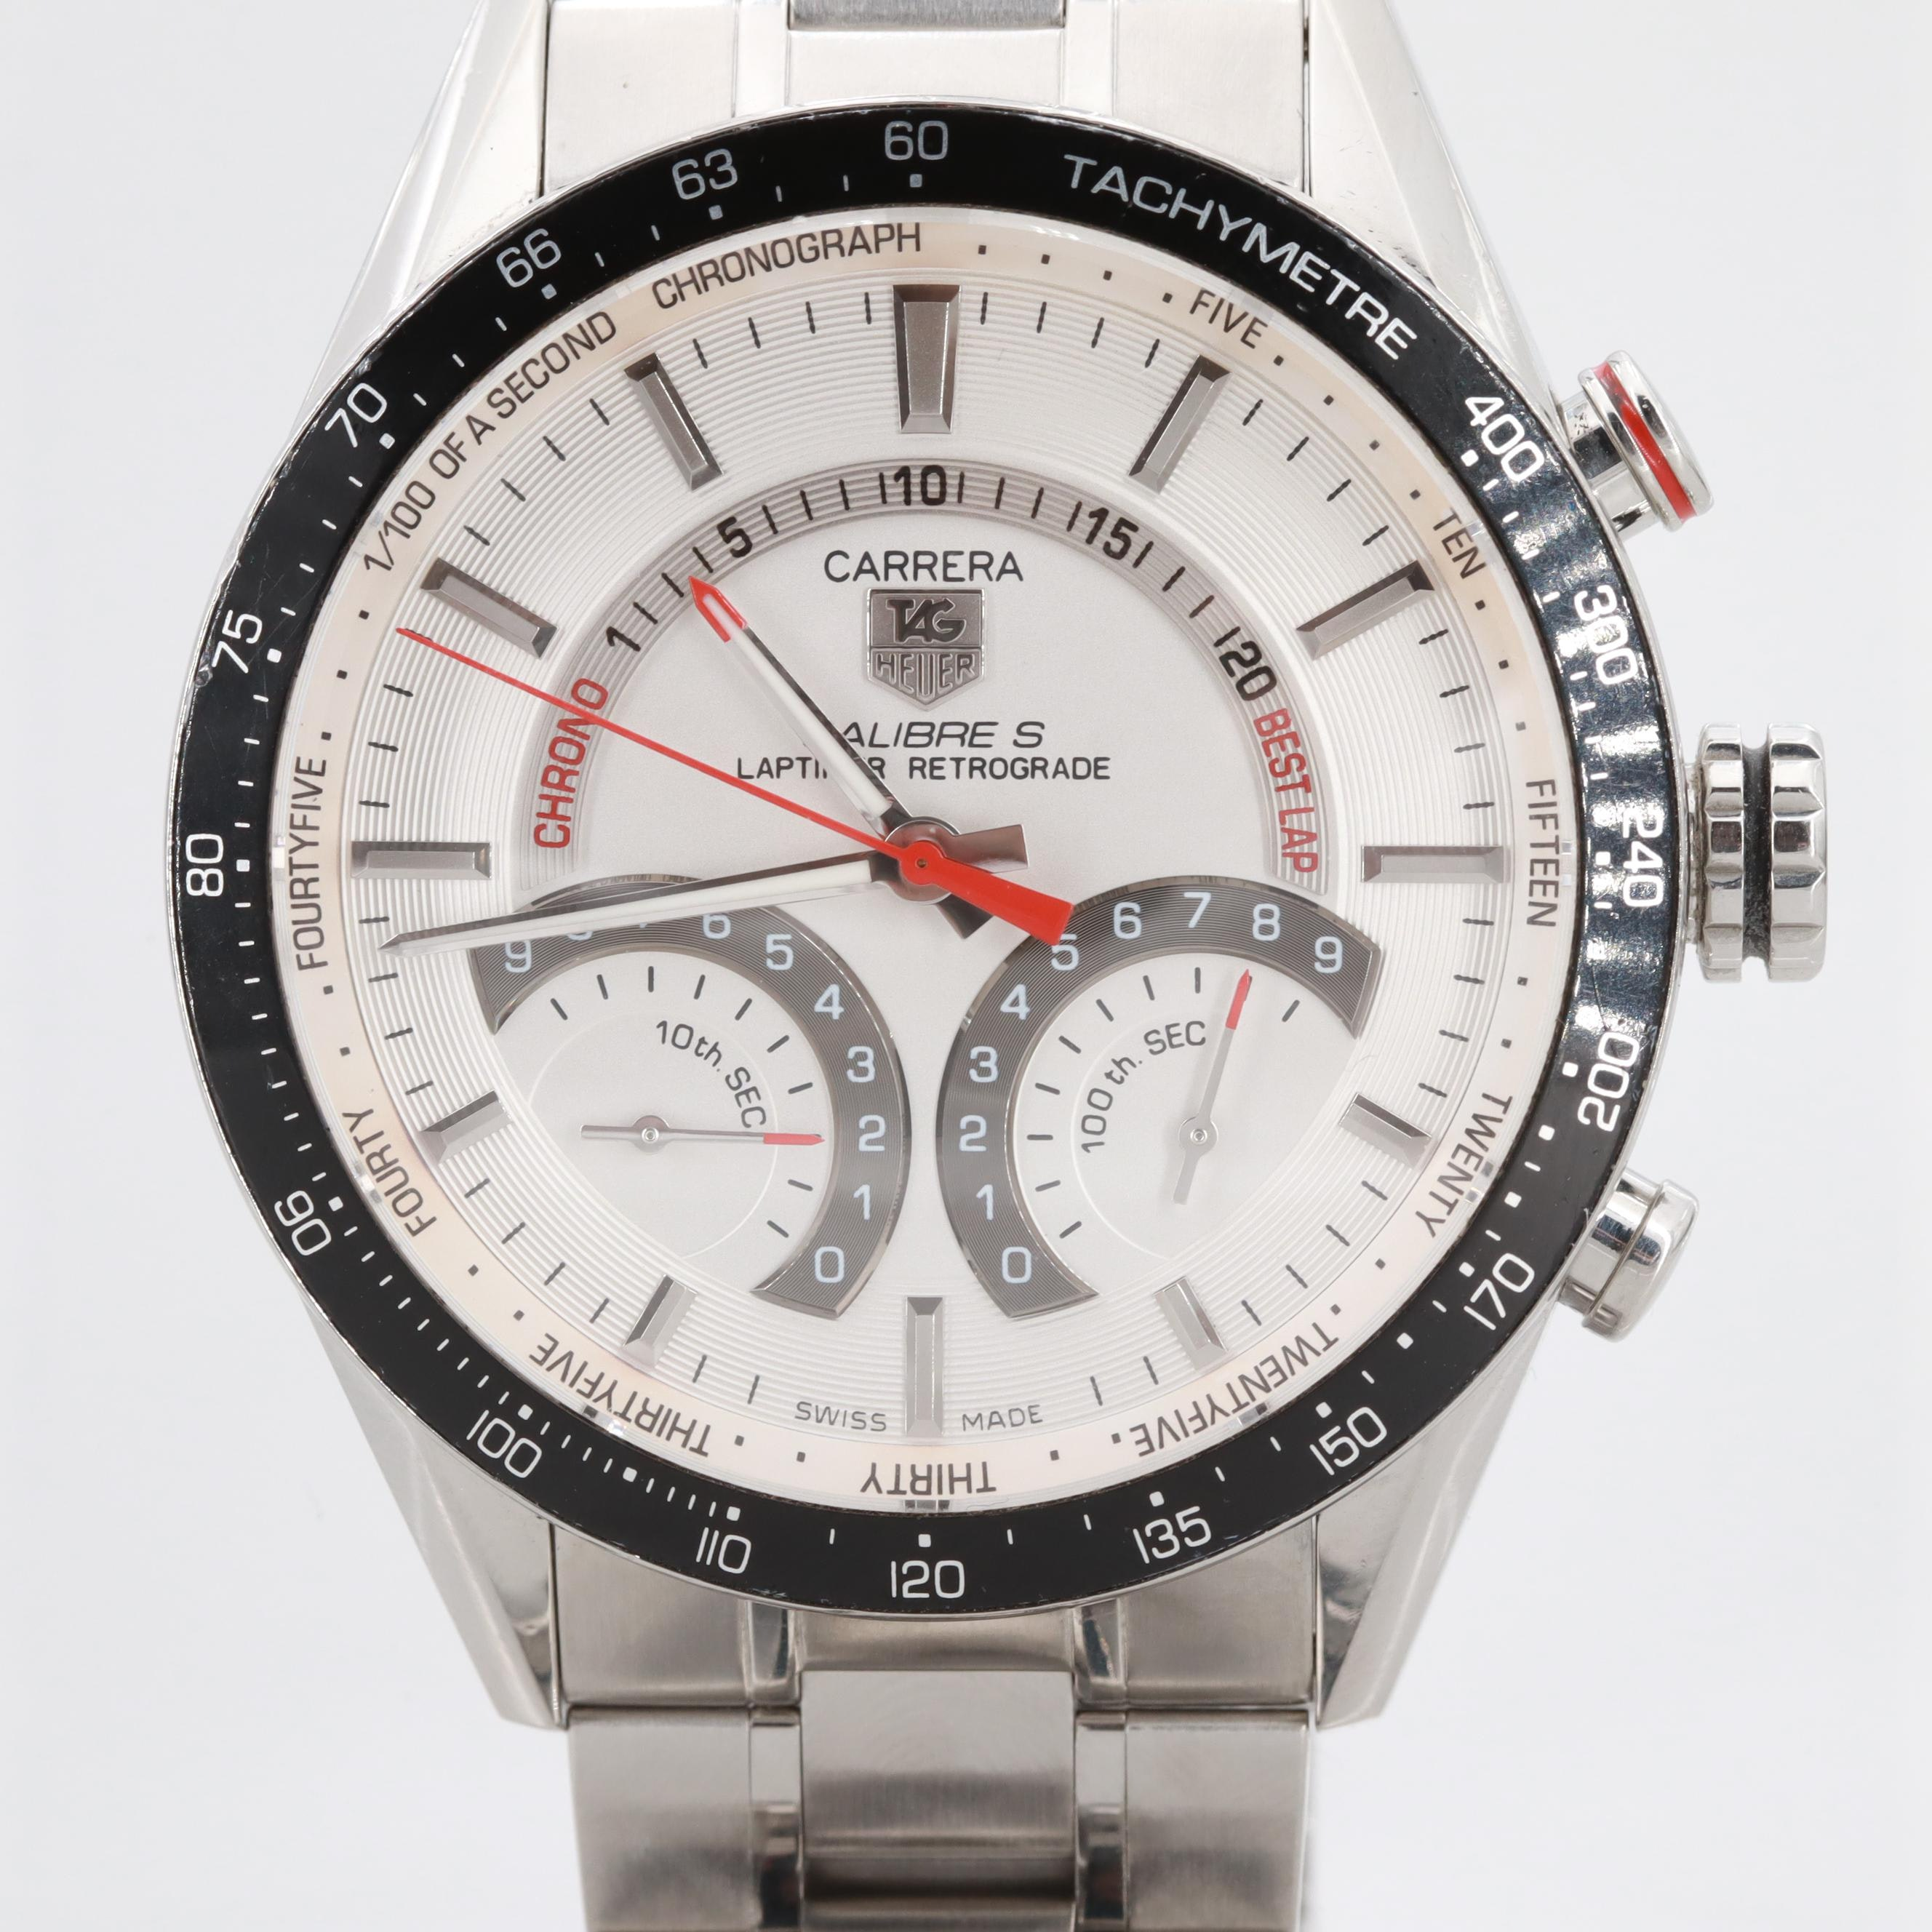 TAG Heuer Calibre S Laptimer Retrograde Wristwatch